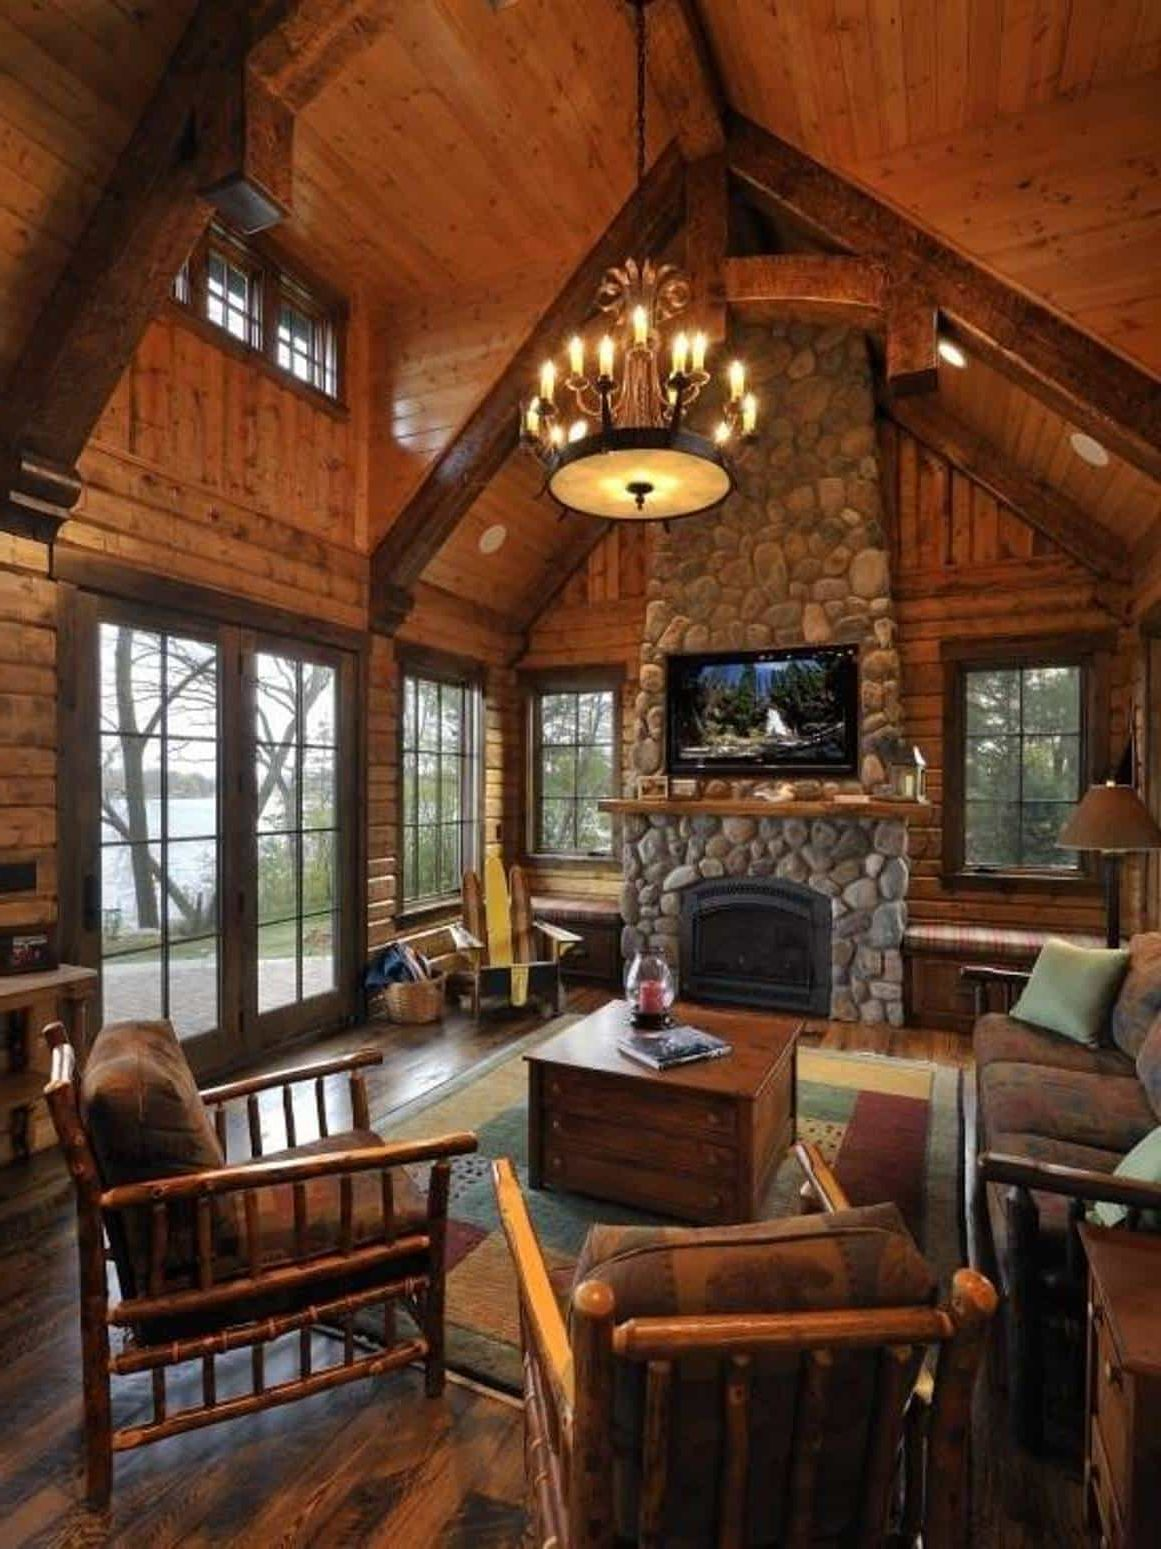 Log Cabin Decorating Ideas Decor Around The World In 2020 Rustic Cabin Cabin Style Rustic House #rustic #look #for #living #room